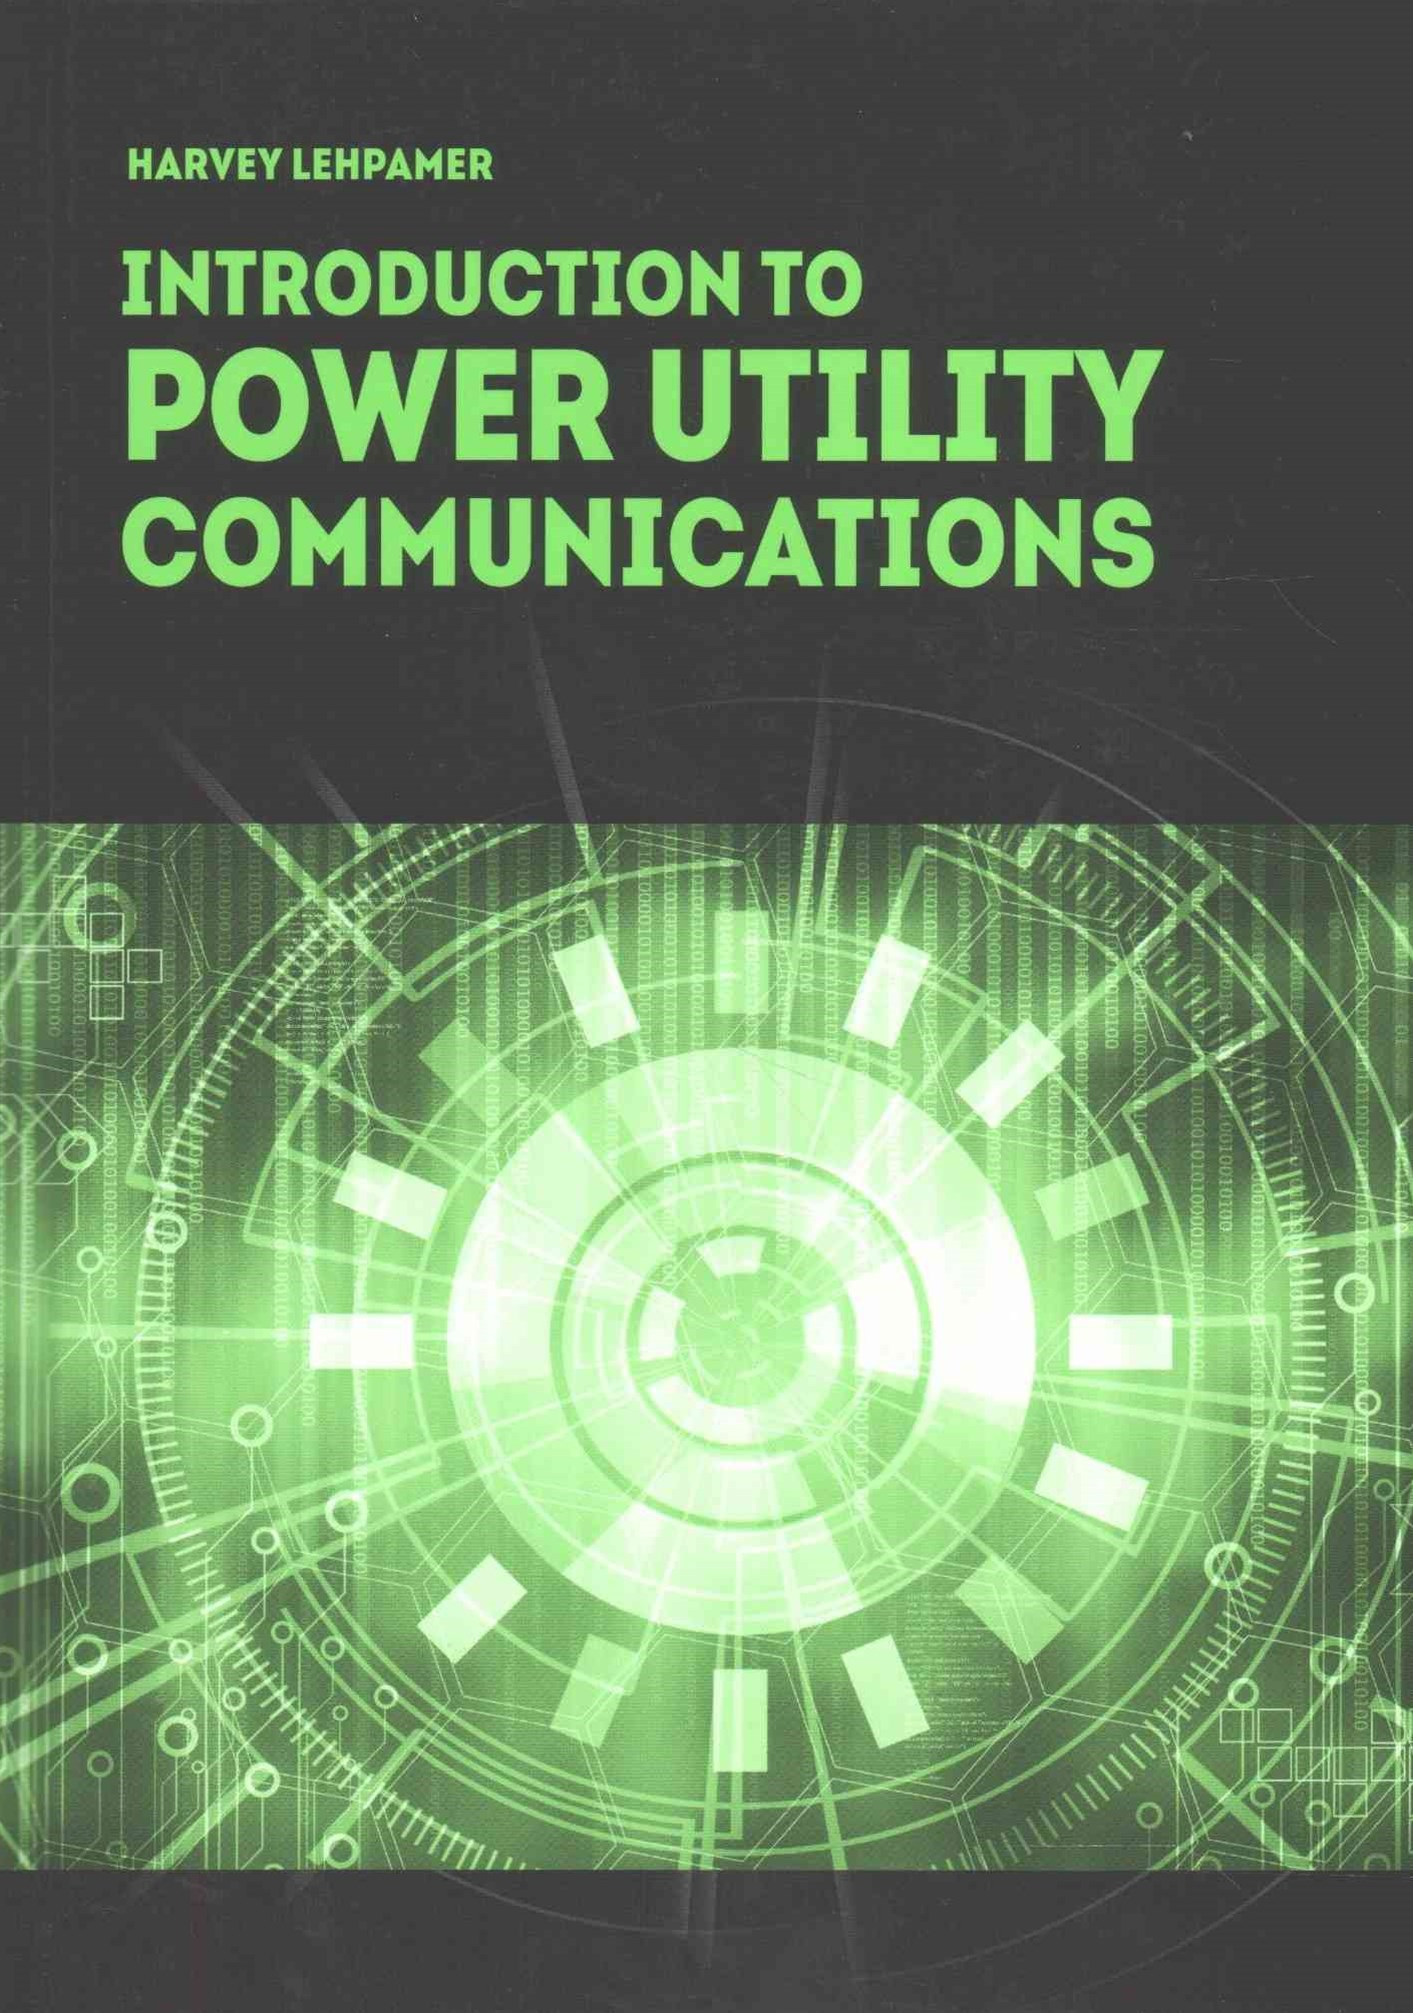 Introduction to Power Utility Communications